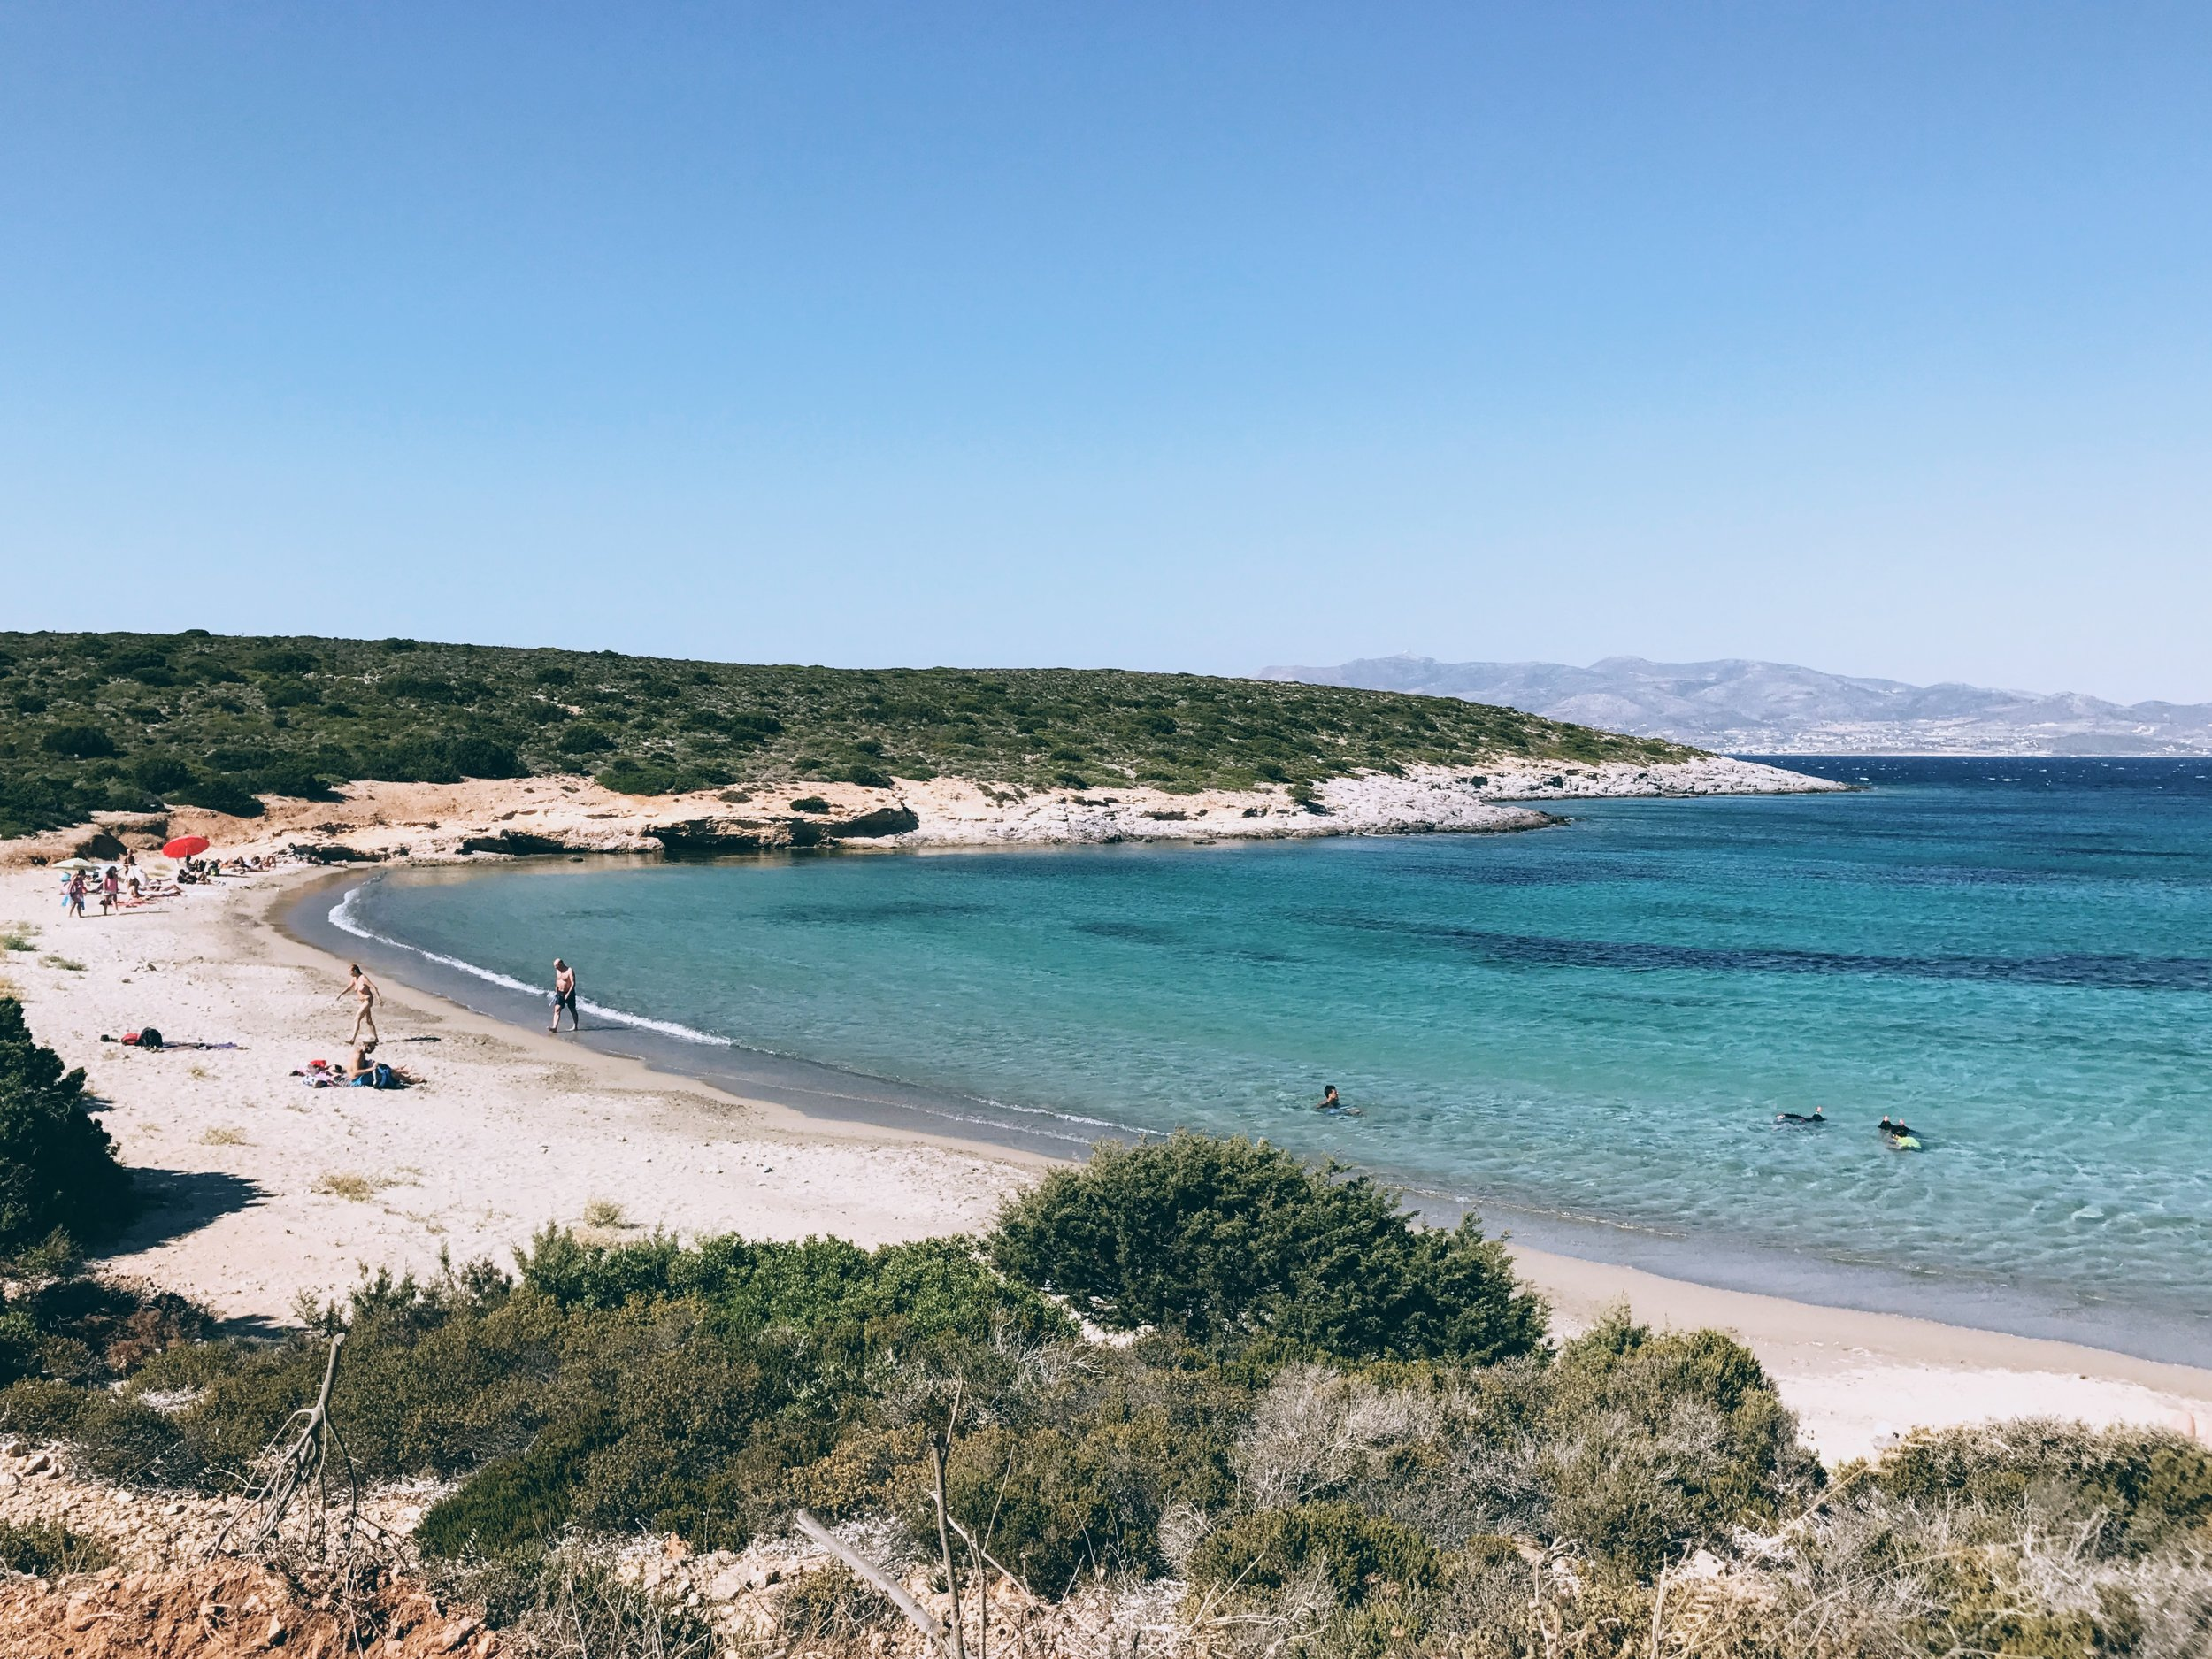 Sostis beach with its signature turquoise waters